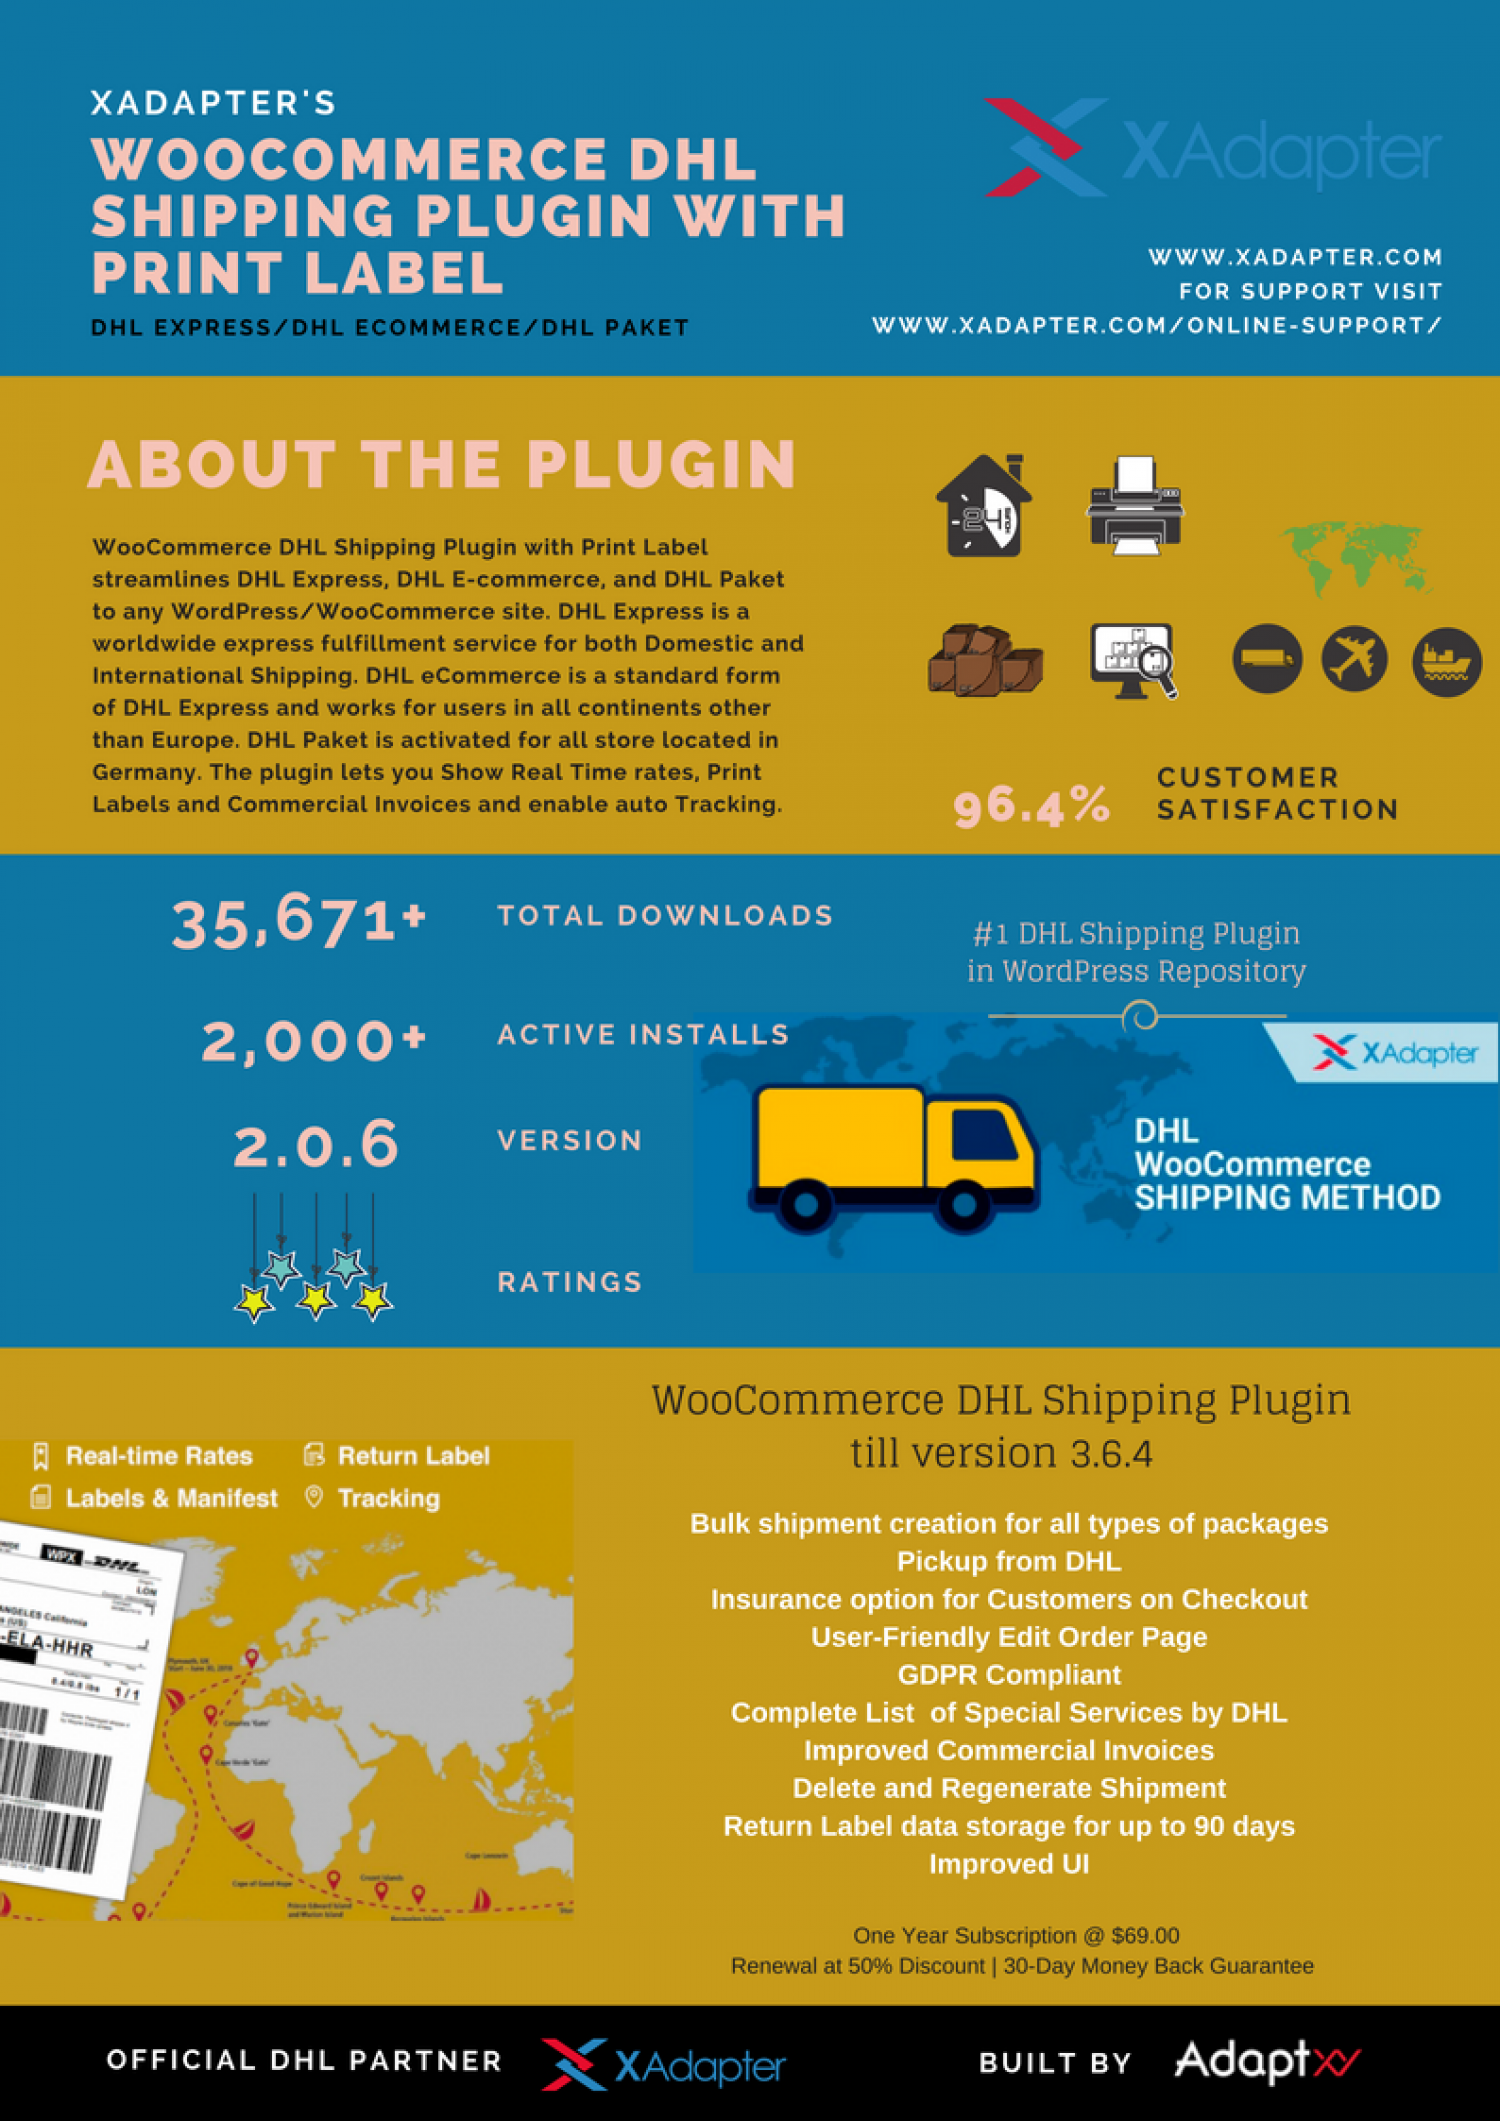 Features of WooCommerce DHL Shipping Plugin Infographic